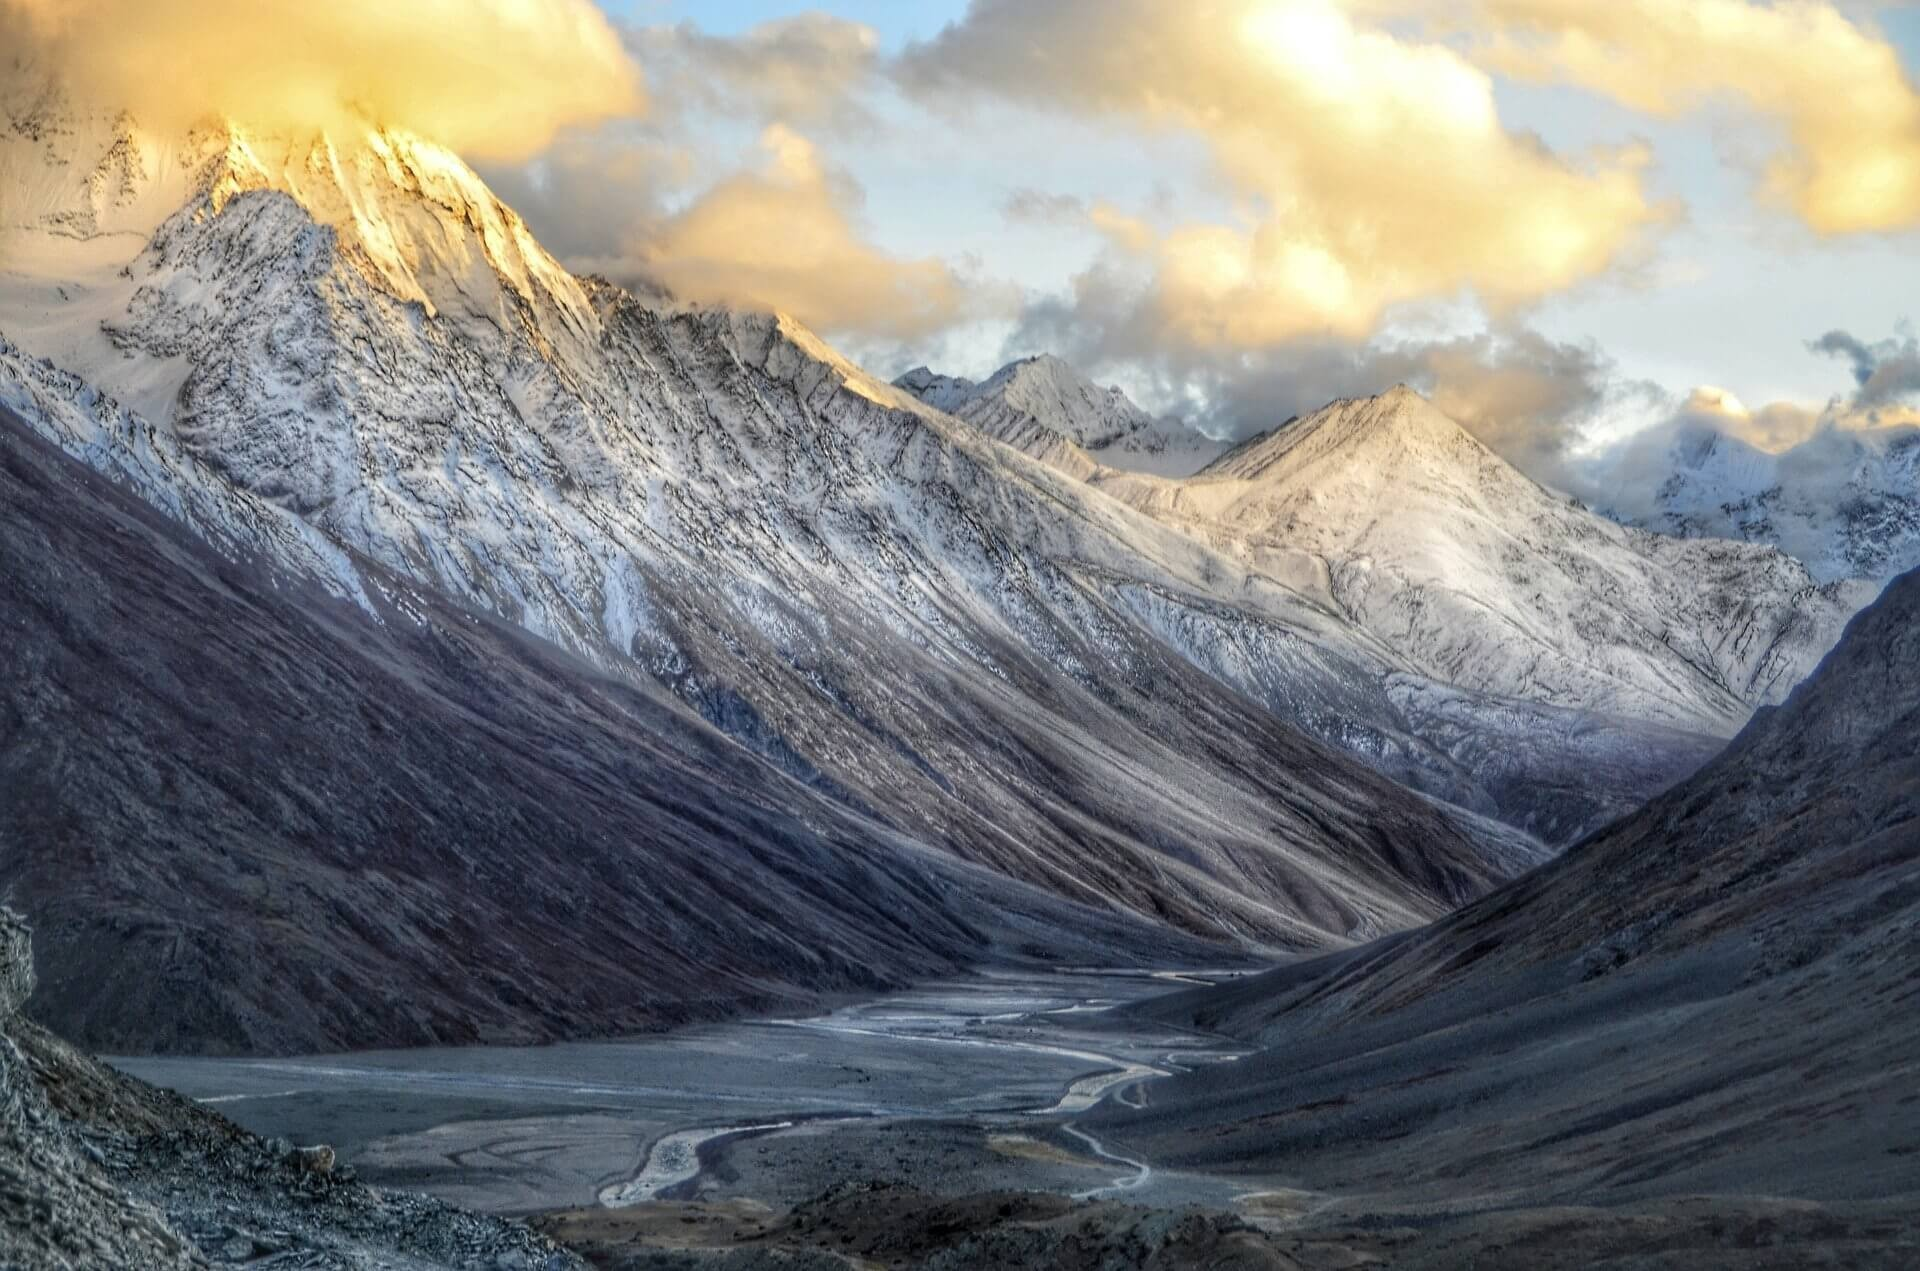 340 Himachal Pradesh Tour Packages, Book @ Upto 50% Off